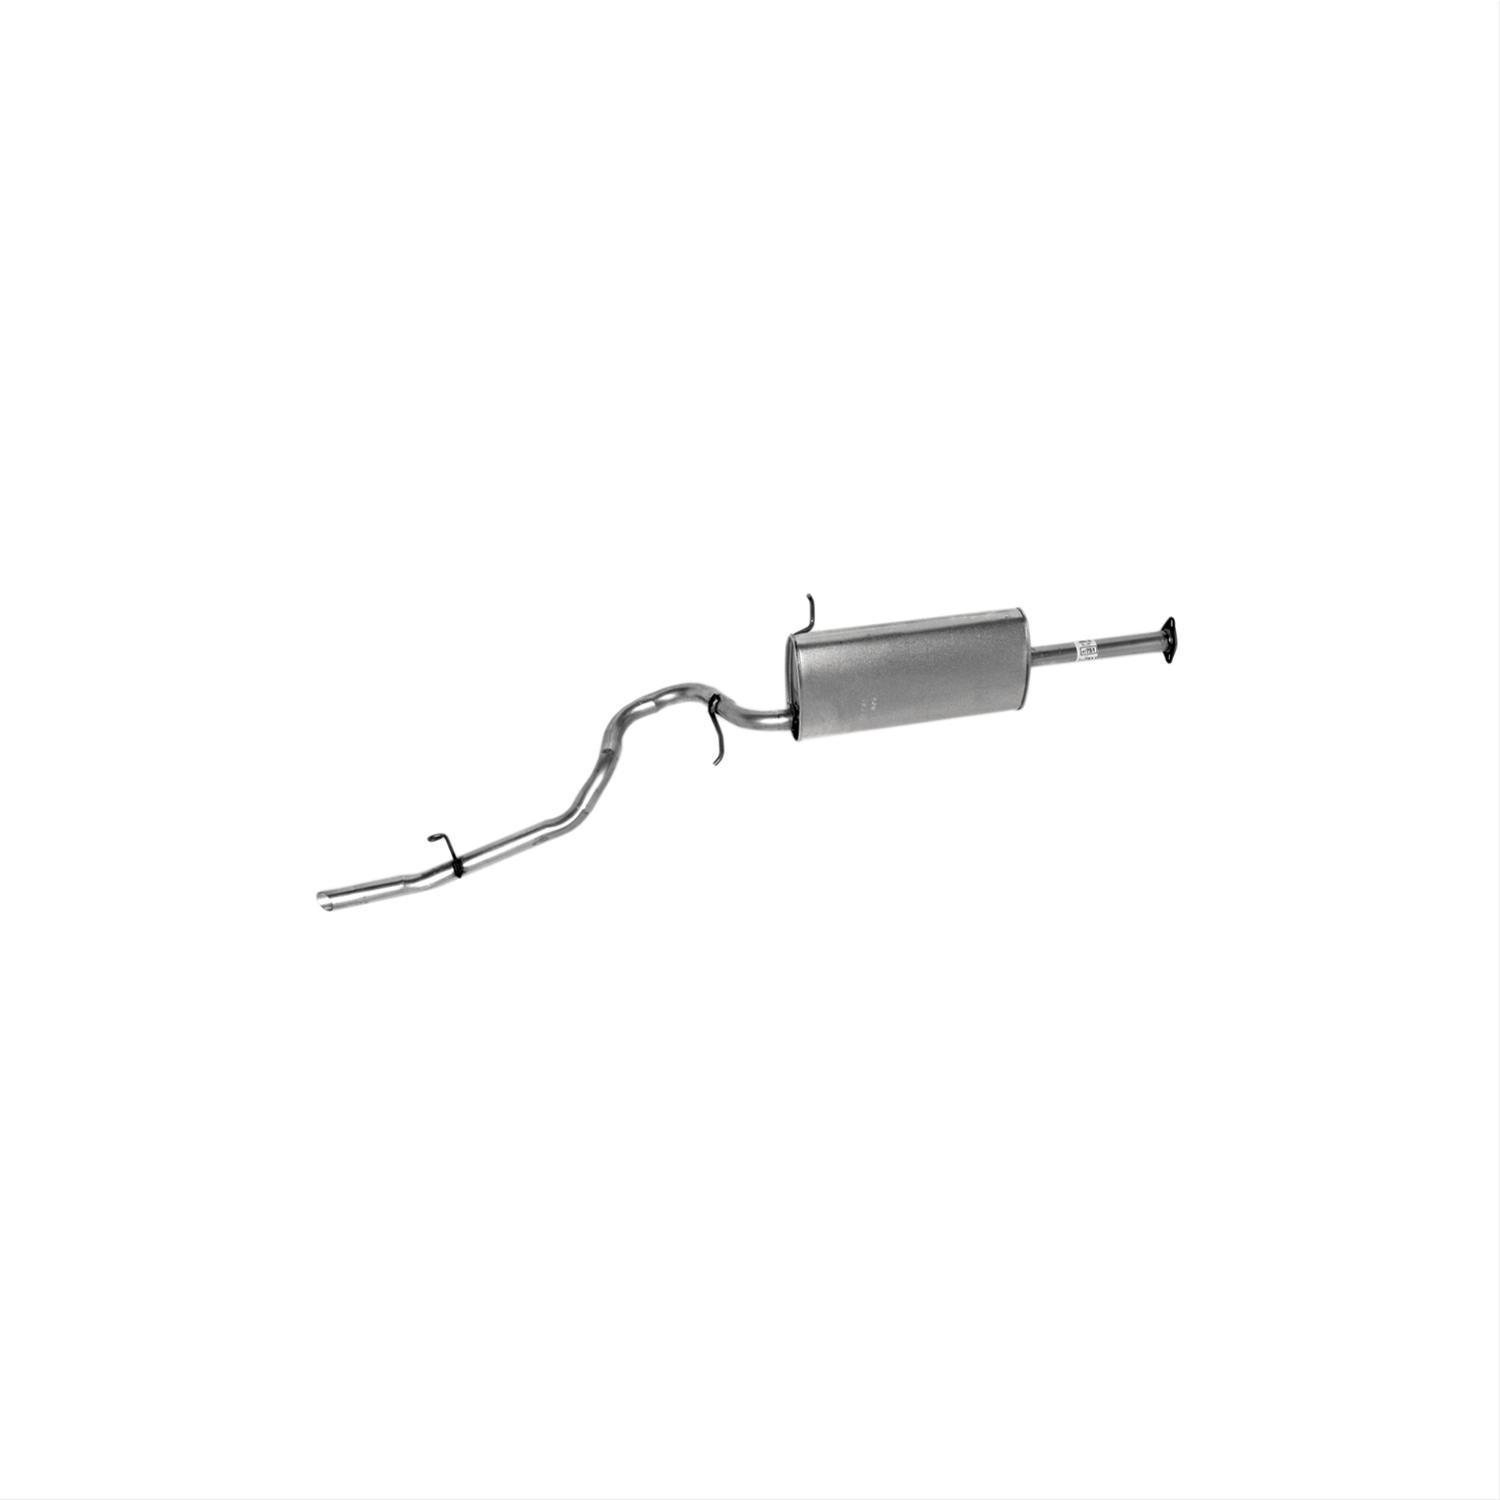 Exhaust Muffler-SoundFX Direct Fit Muffler Walker 18461